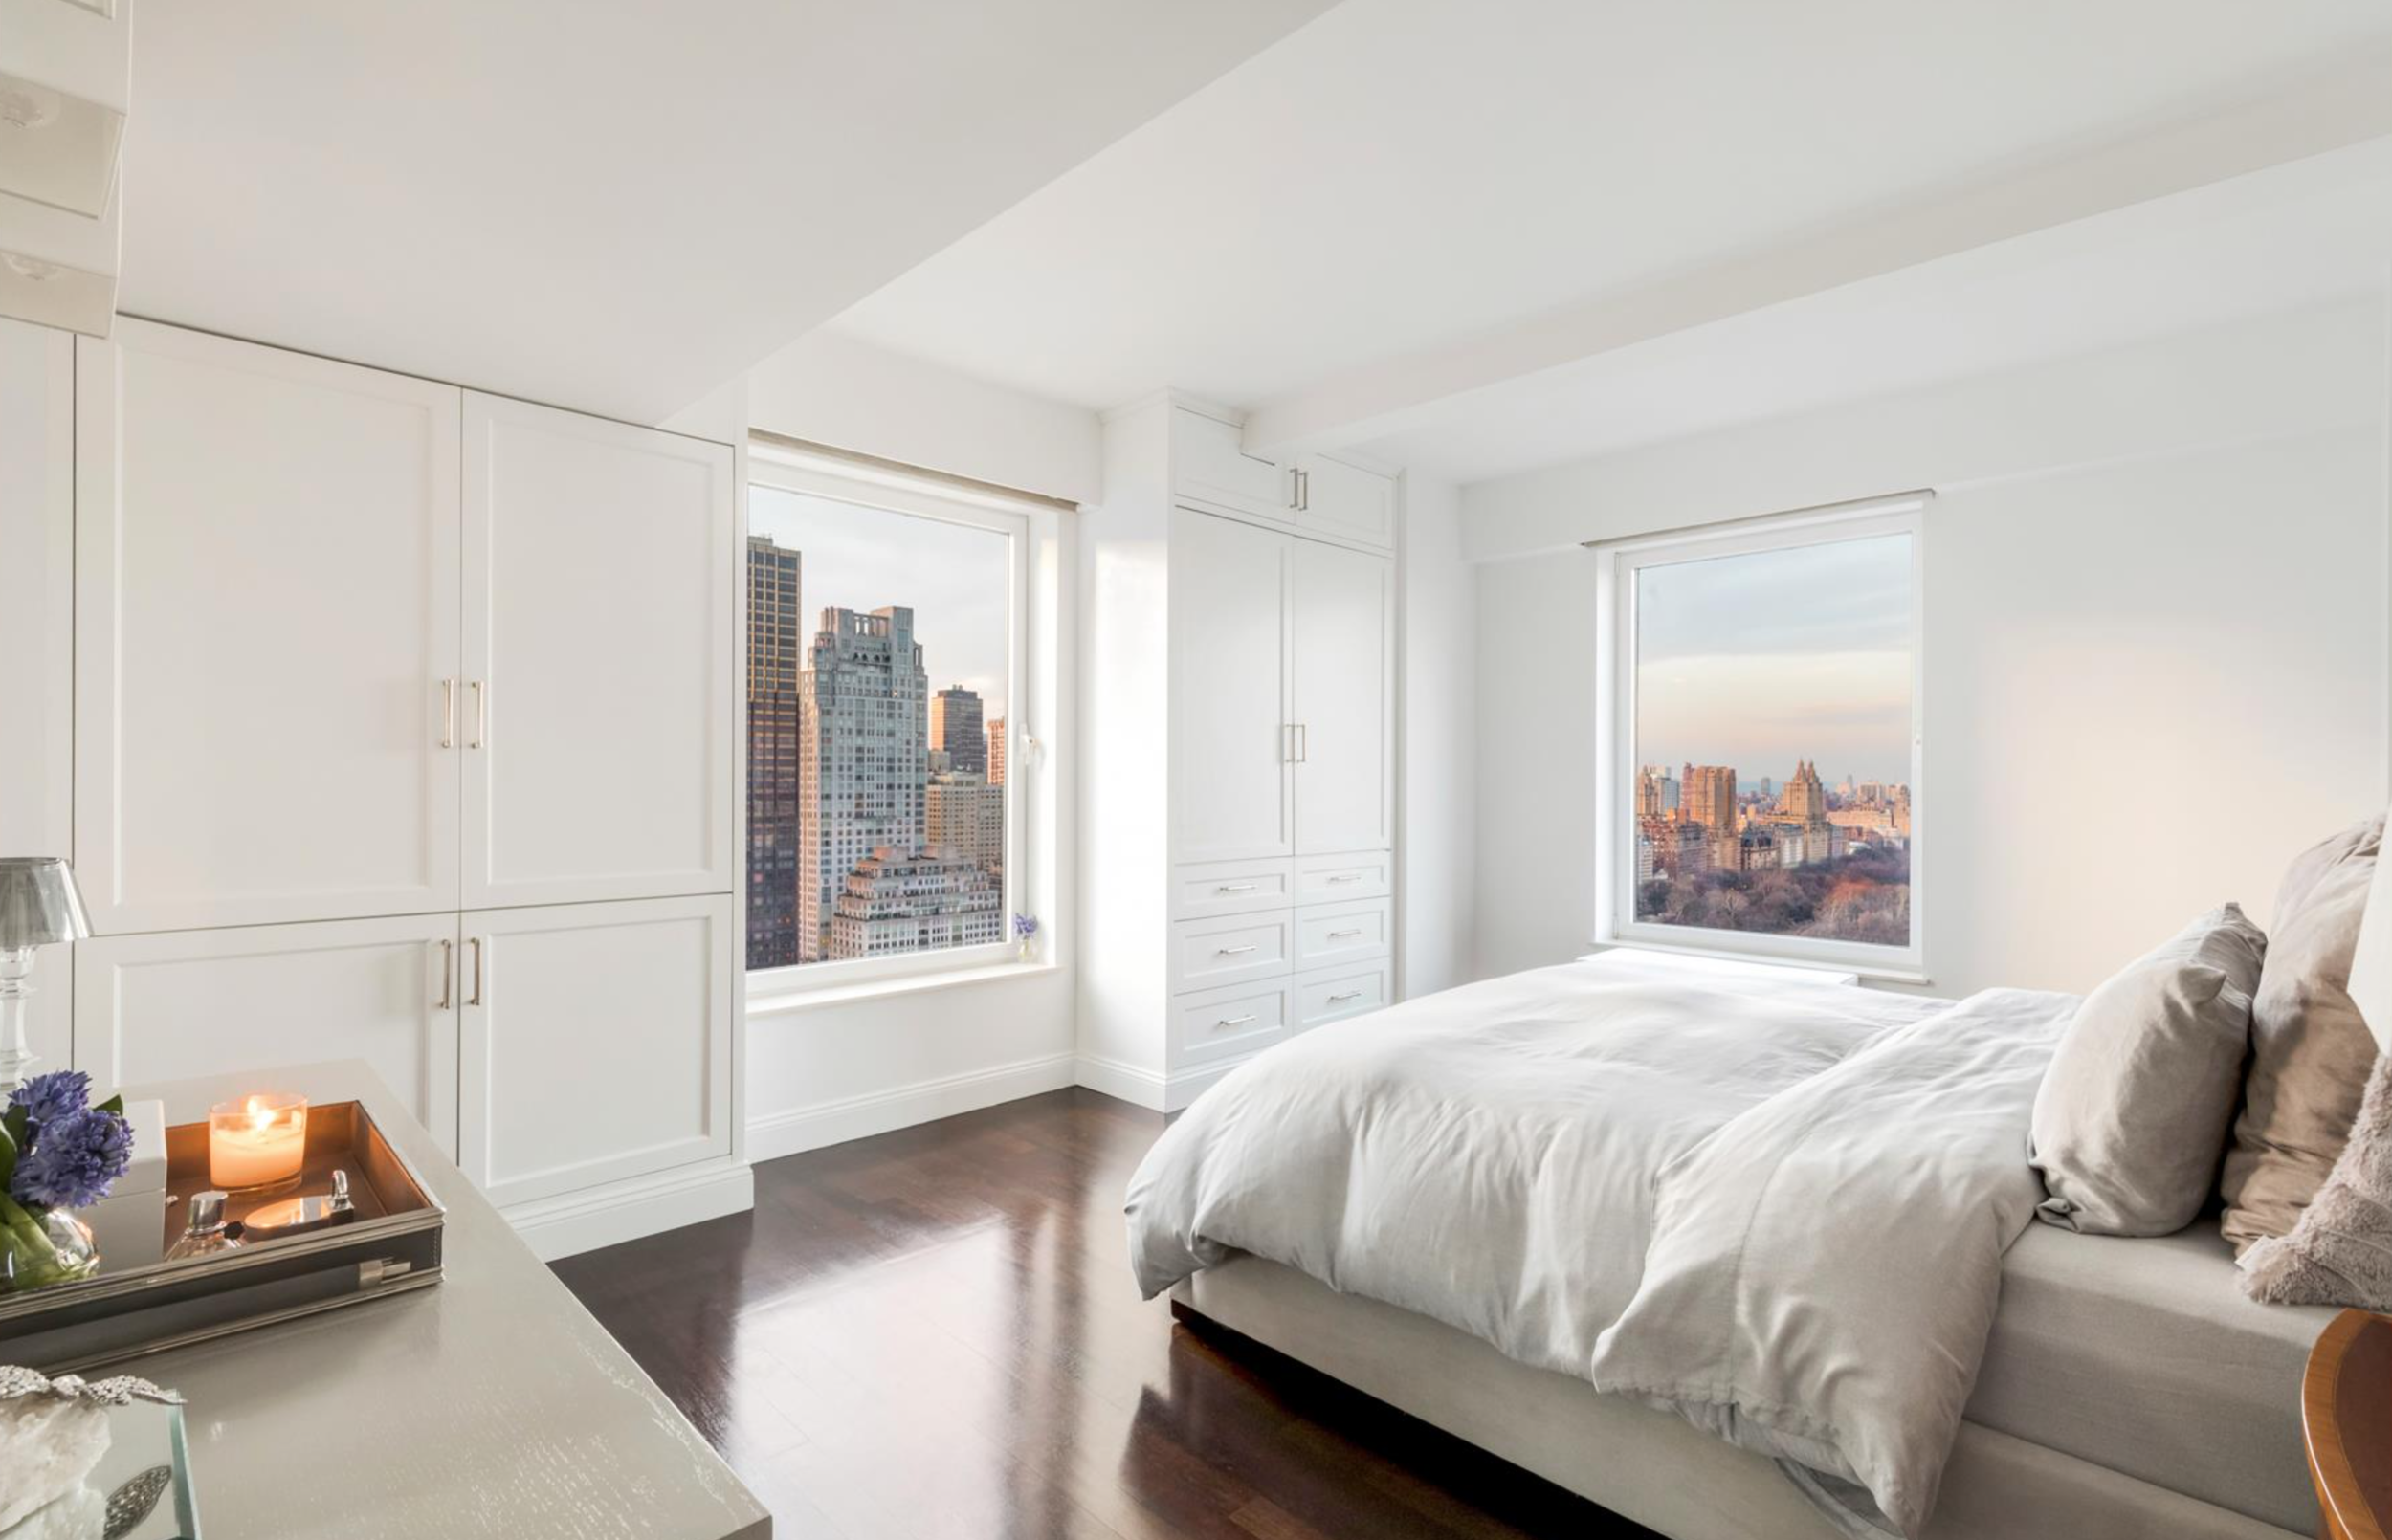 Tour A Lavish Central Park South Residence In The Exclusive J.W. Marriott Essex House Listed With Million Dollar Listing's Fredrik Eklund